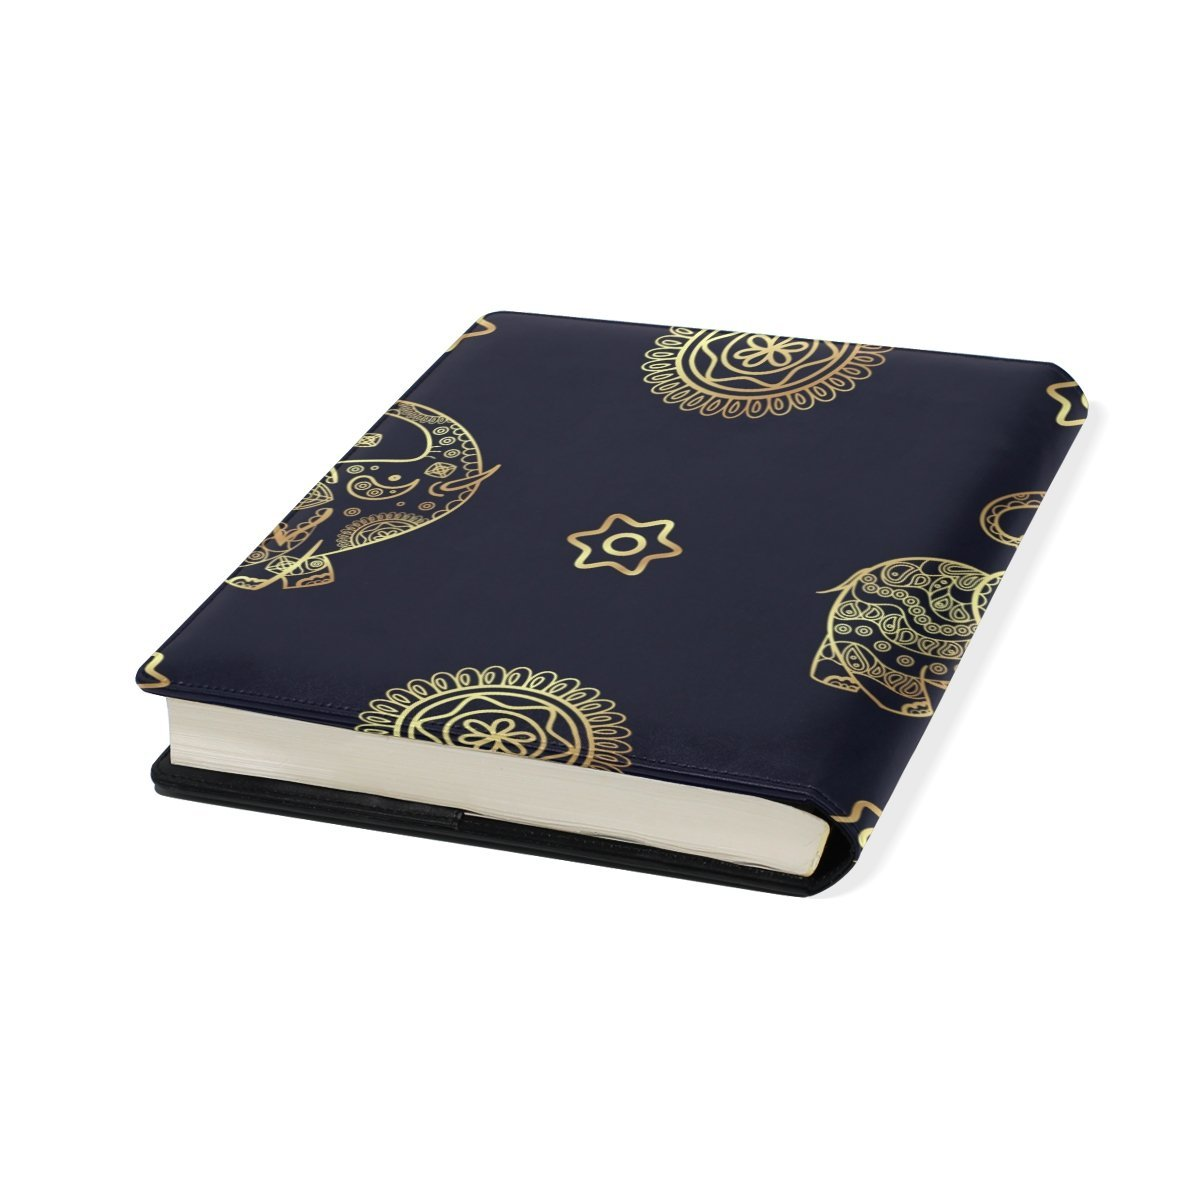 Sunlome Gold Elephant Pattern Stretchable PU Leather Book Cover 9 x 11 Inches Fits for School Hardcover Textbooks